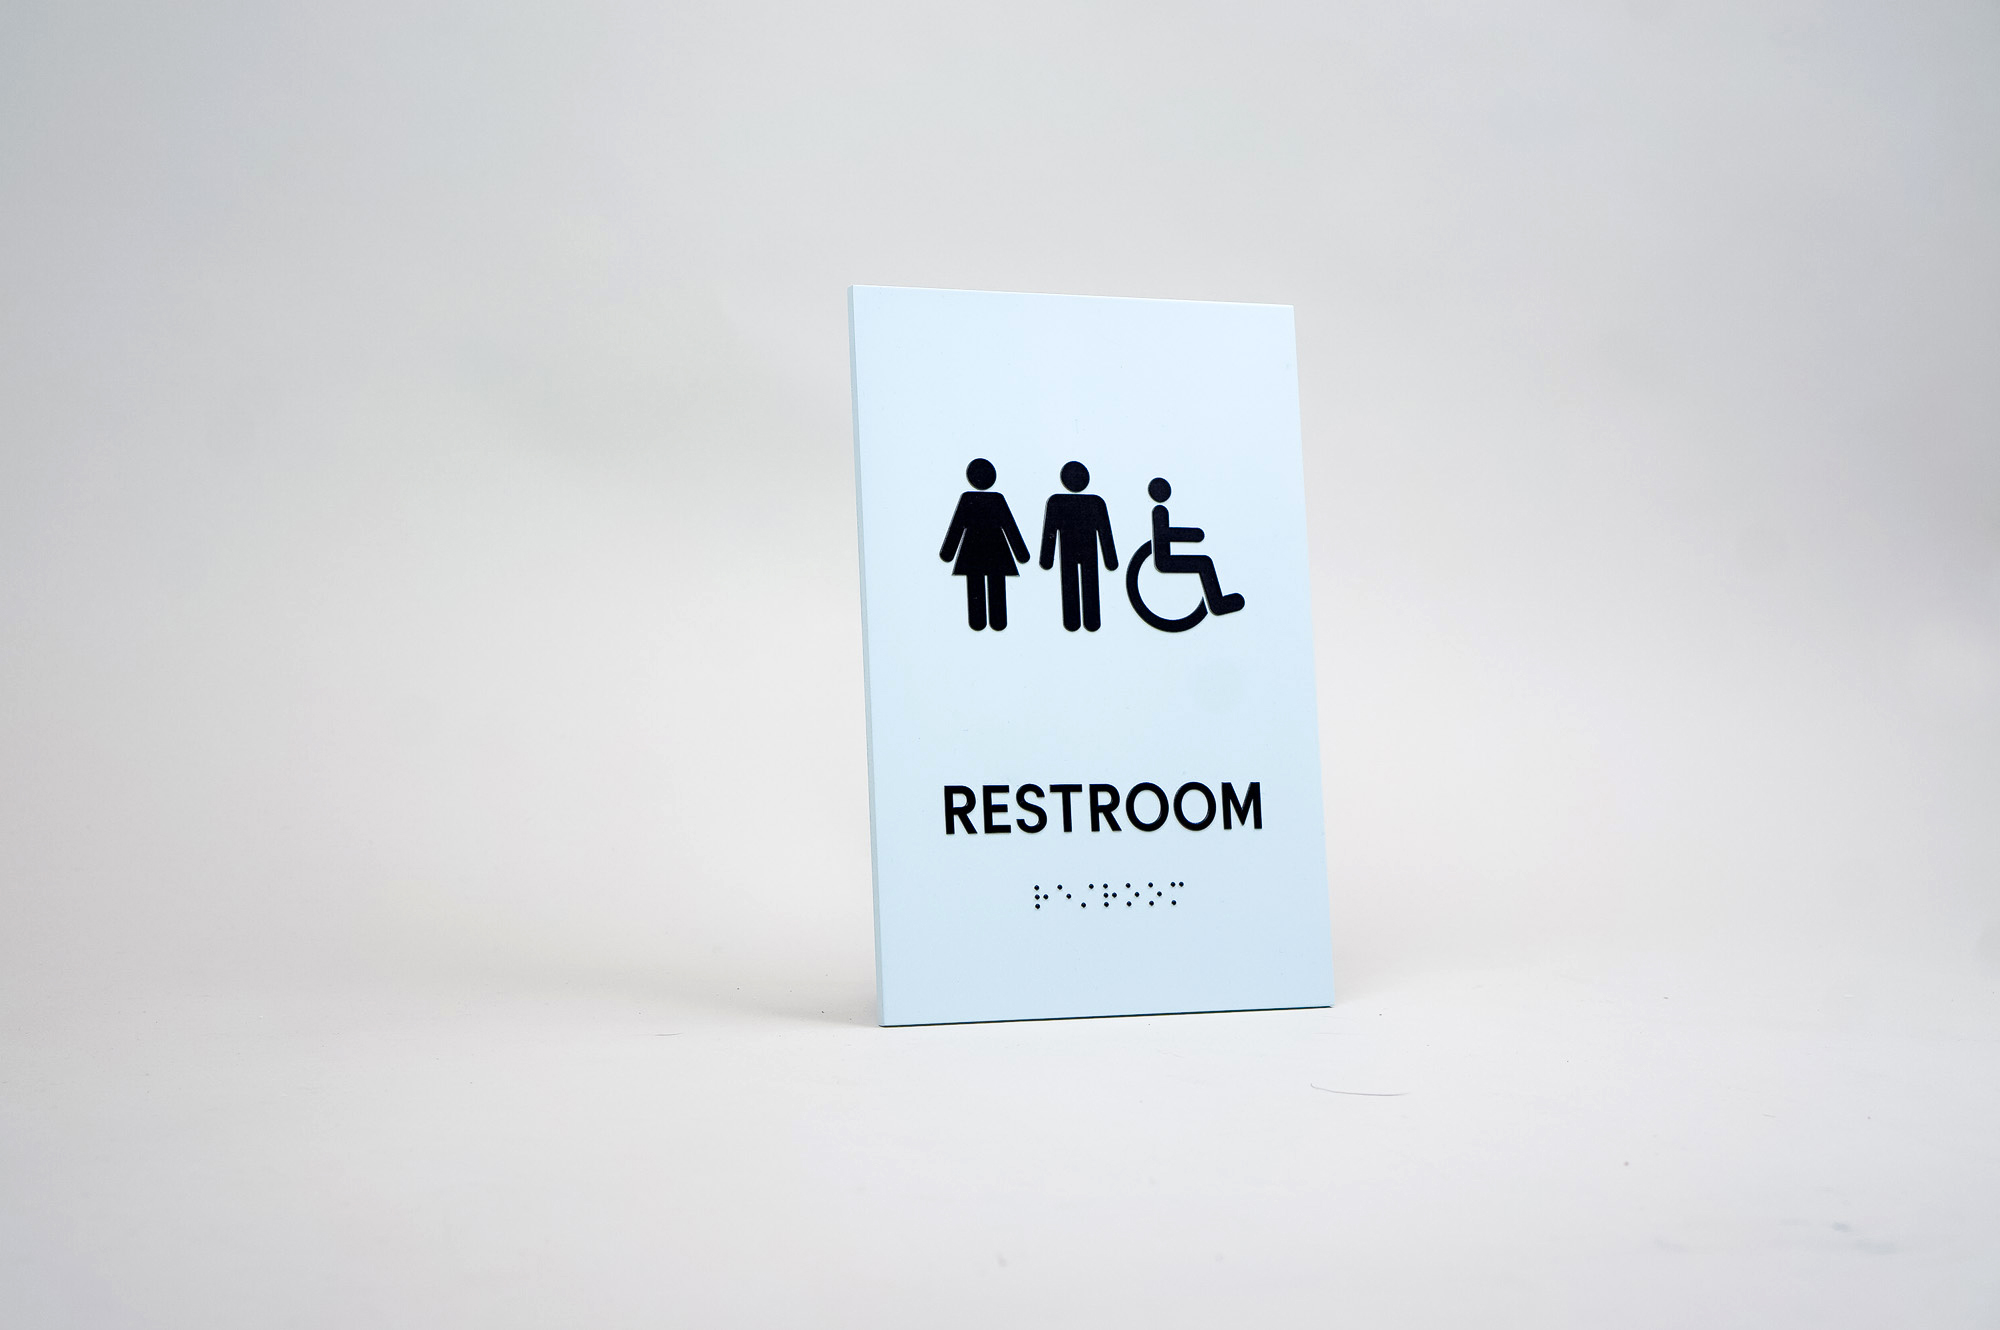 Custom ADA restroom sign for The Wing, a co-working space in San Francisco.